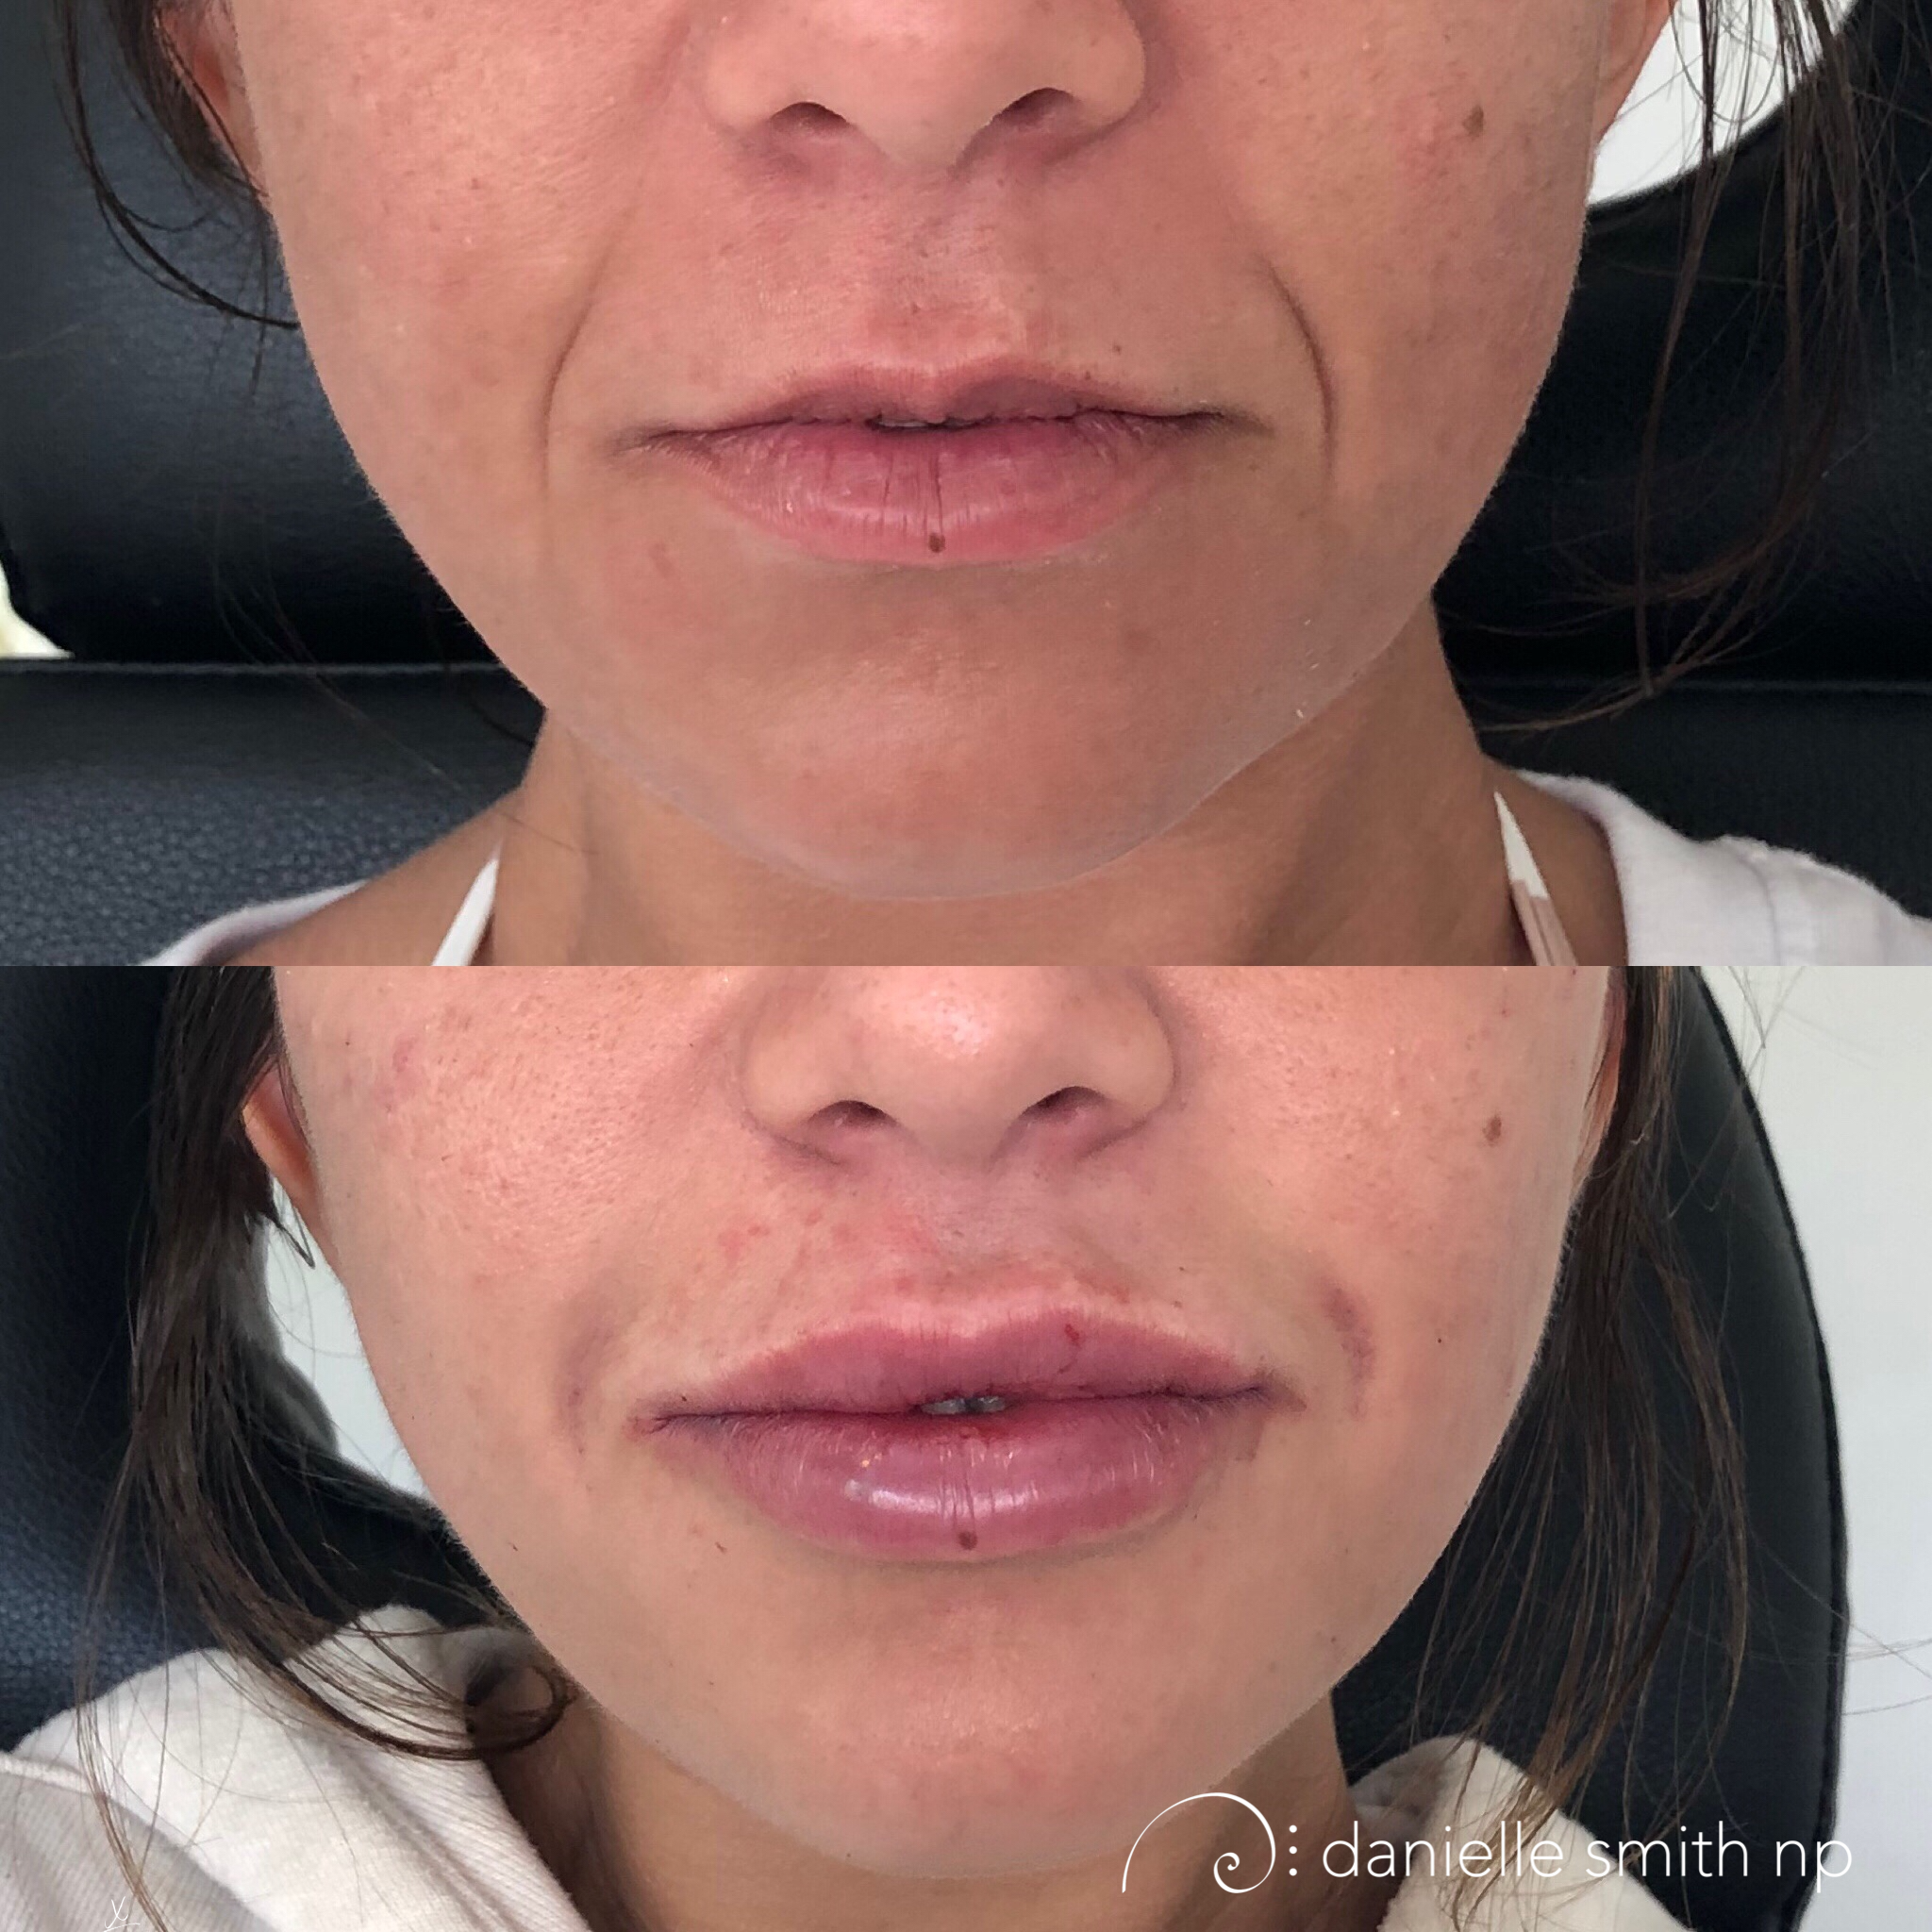 Danielle Smith NP injected 4 syringes of Juvederm. 2 syringes to the body of the lip, one to top and bottom in the first setting along with a 3rd syringe to the nasolabial folds (laugh lines). On the second session 2 months later she injected a 4th syringe into the body to the lips. This patient had a very small top lip and wanted to accomplish a 40:60 ratio. It takes time to flip the top lip by a significant amount. The best approach is to build the product up over time, adding layer by layer. The tissue can only hold so much product before it starts to shift it, creating bumps or projecting to much in the wrong part of the lip. Danielle recommends waiting 2 months in between building phases.